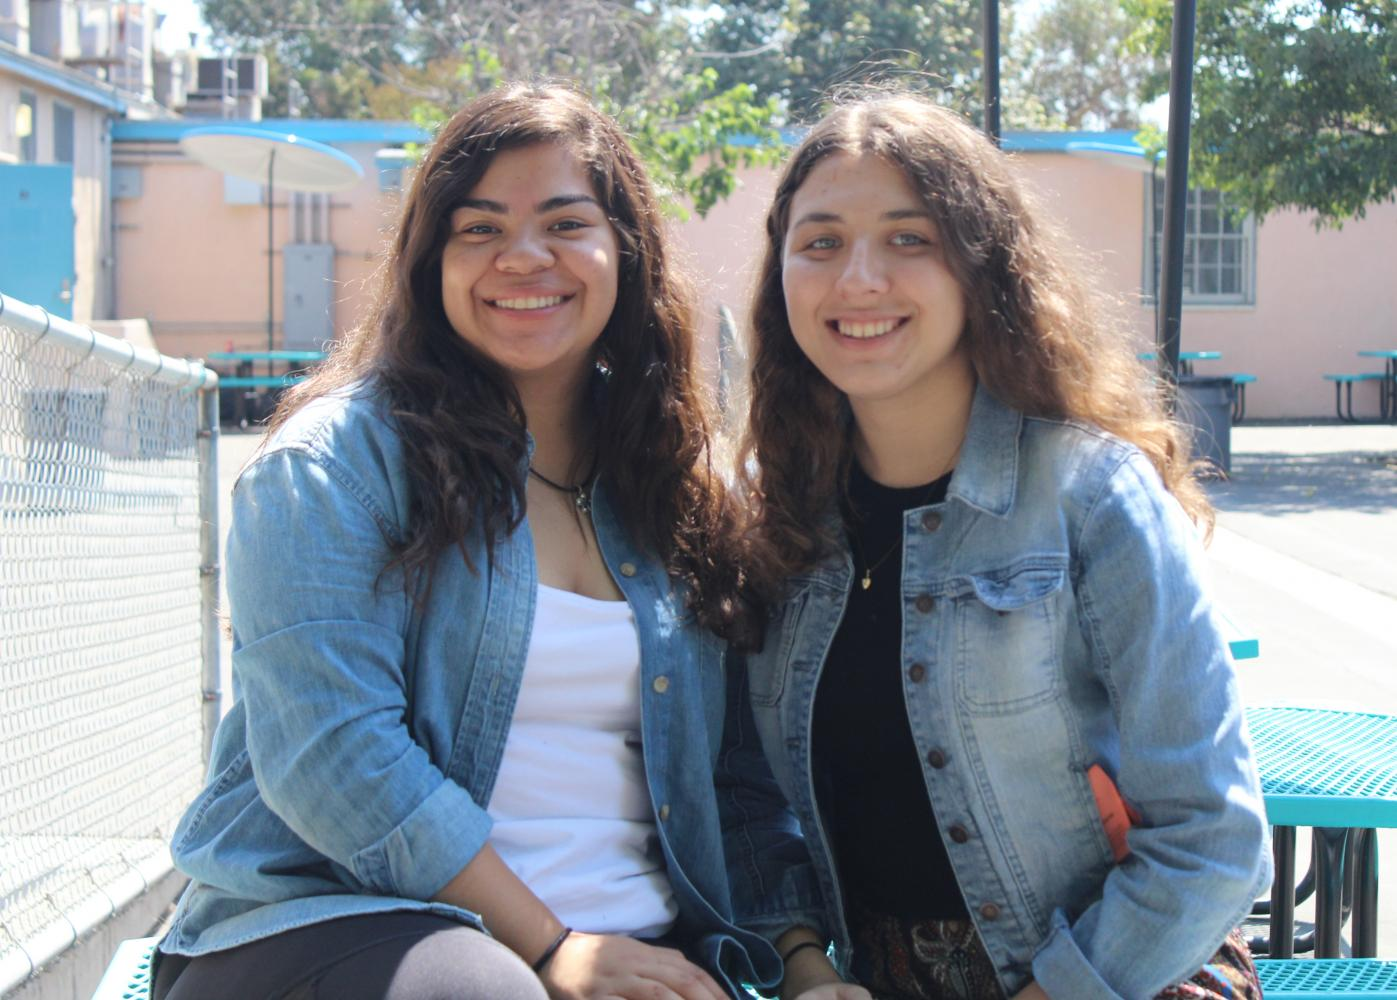 Online Editor-in-Chief Jessica Salguero and Editor in Chief Cristina Jercan get ready to lead the 2017-2018 DPMHS Media staff into a new year of school-wide coverage.